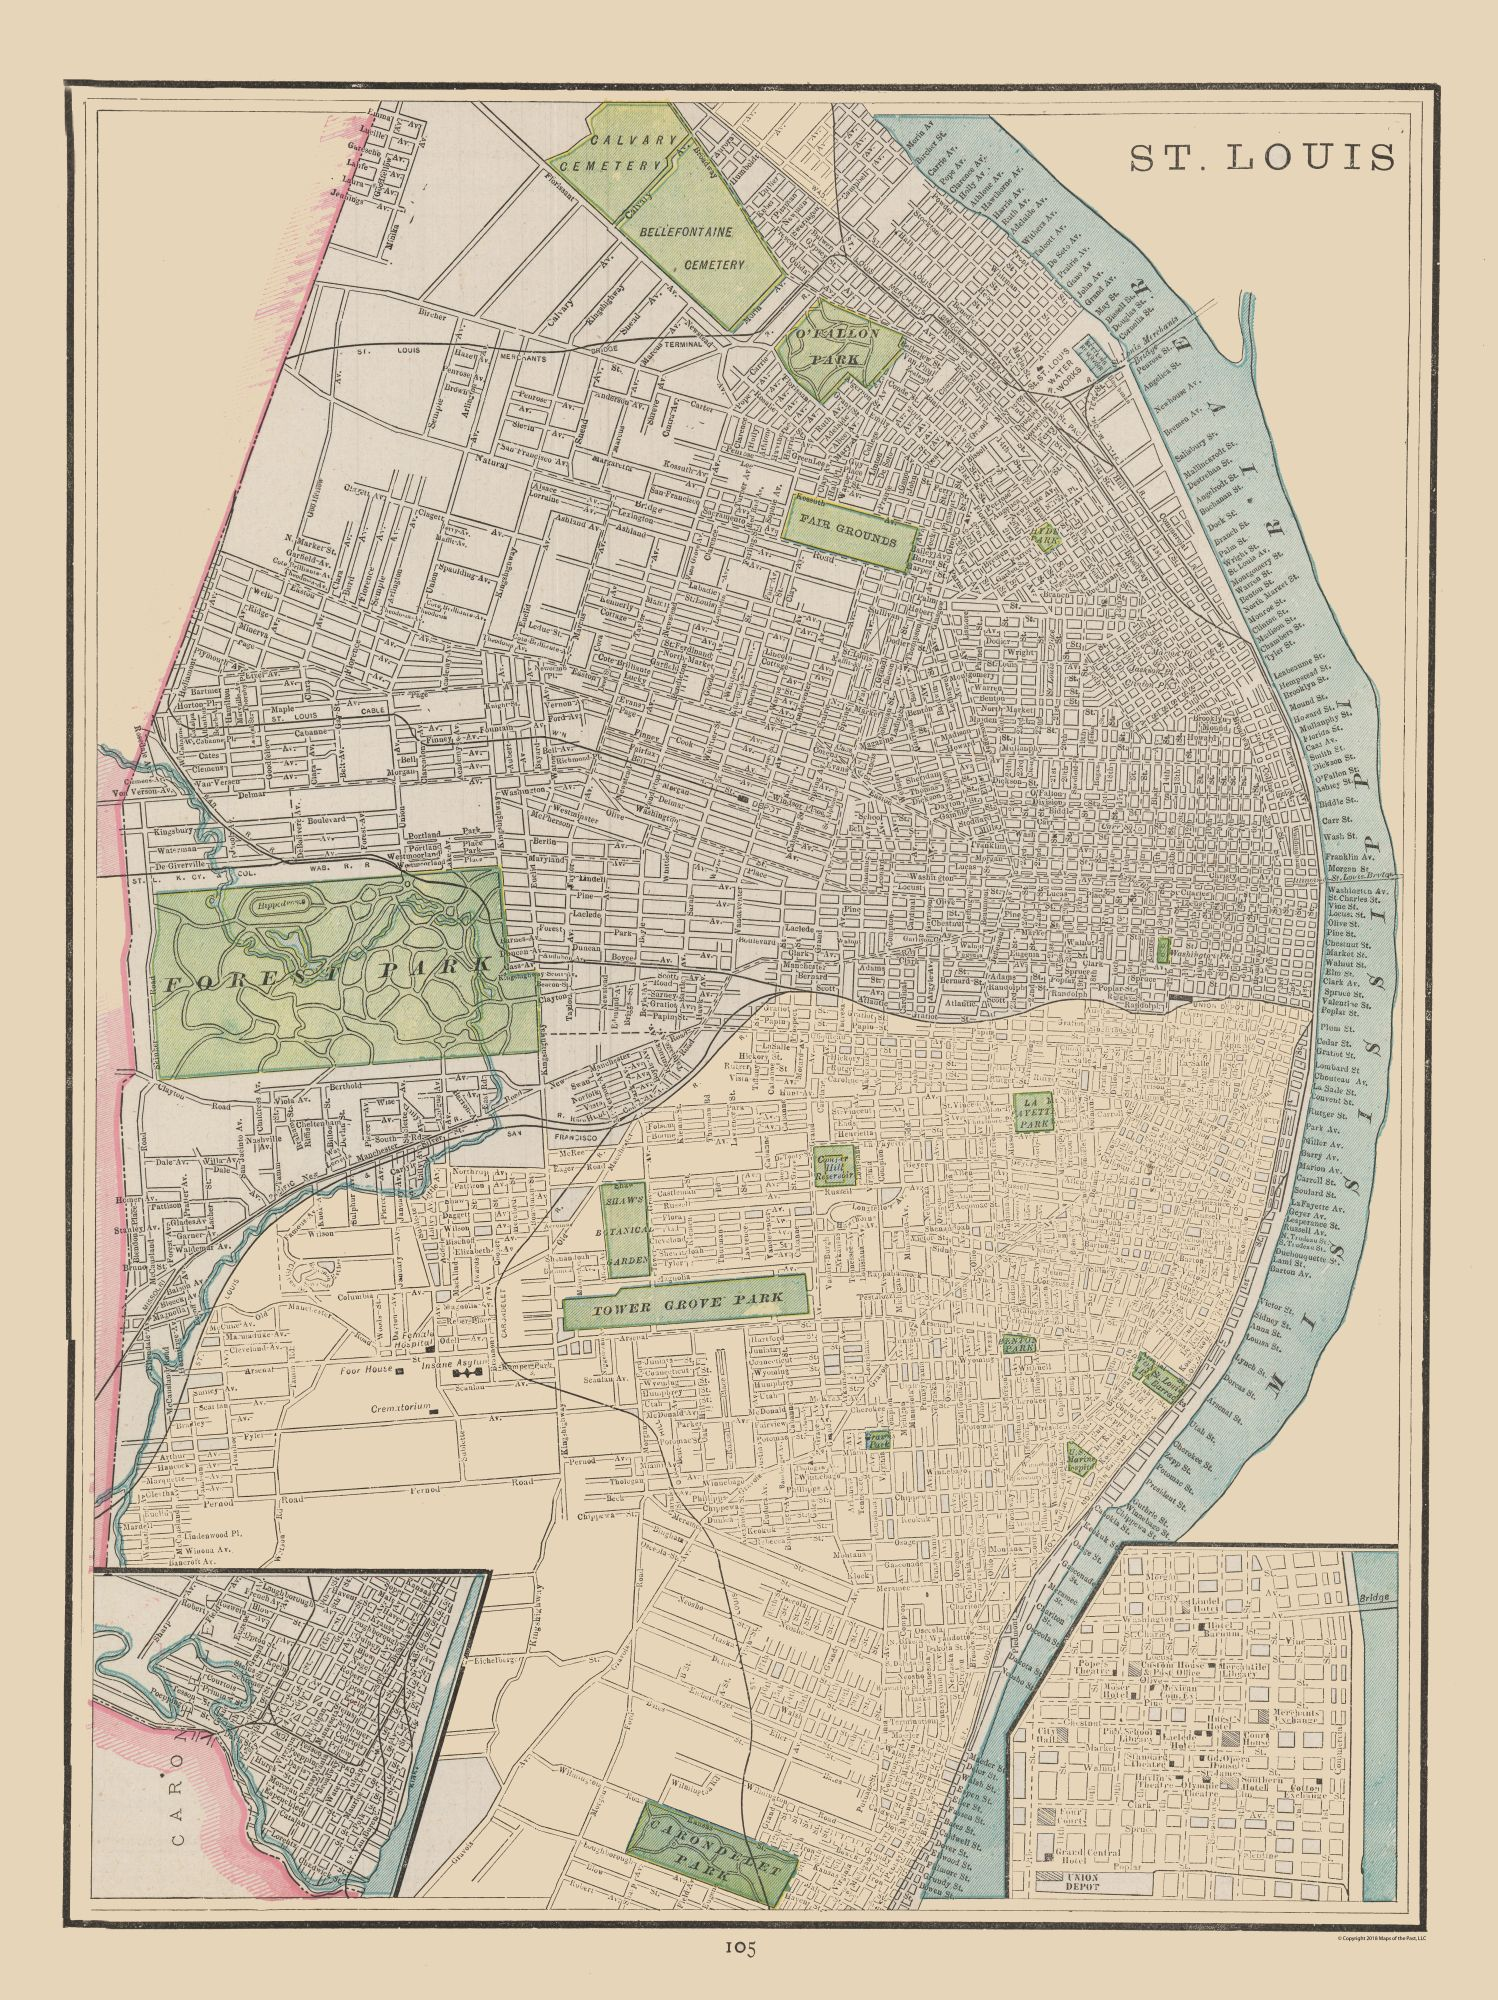 Historic City Maps | St Louis Missouri - Cram 1892 - 23 x 30.71